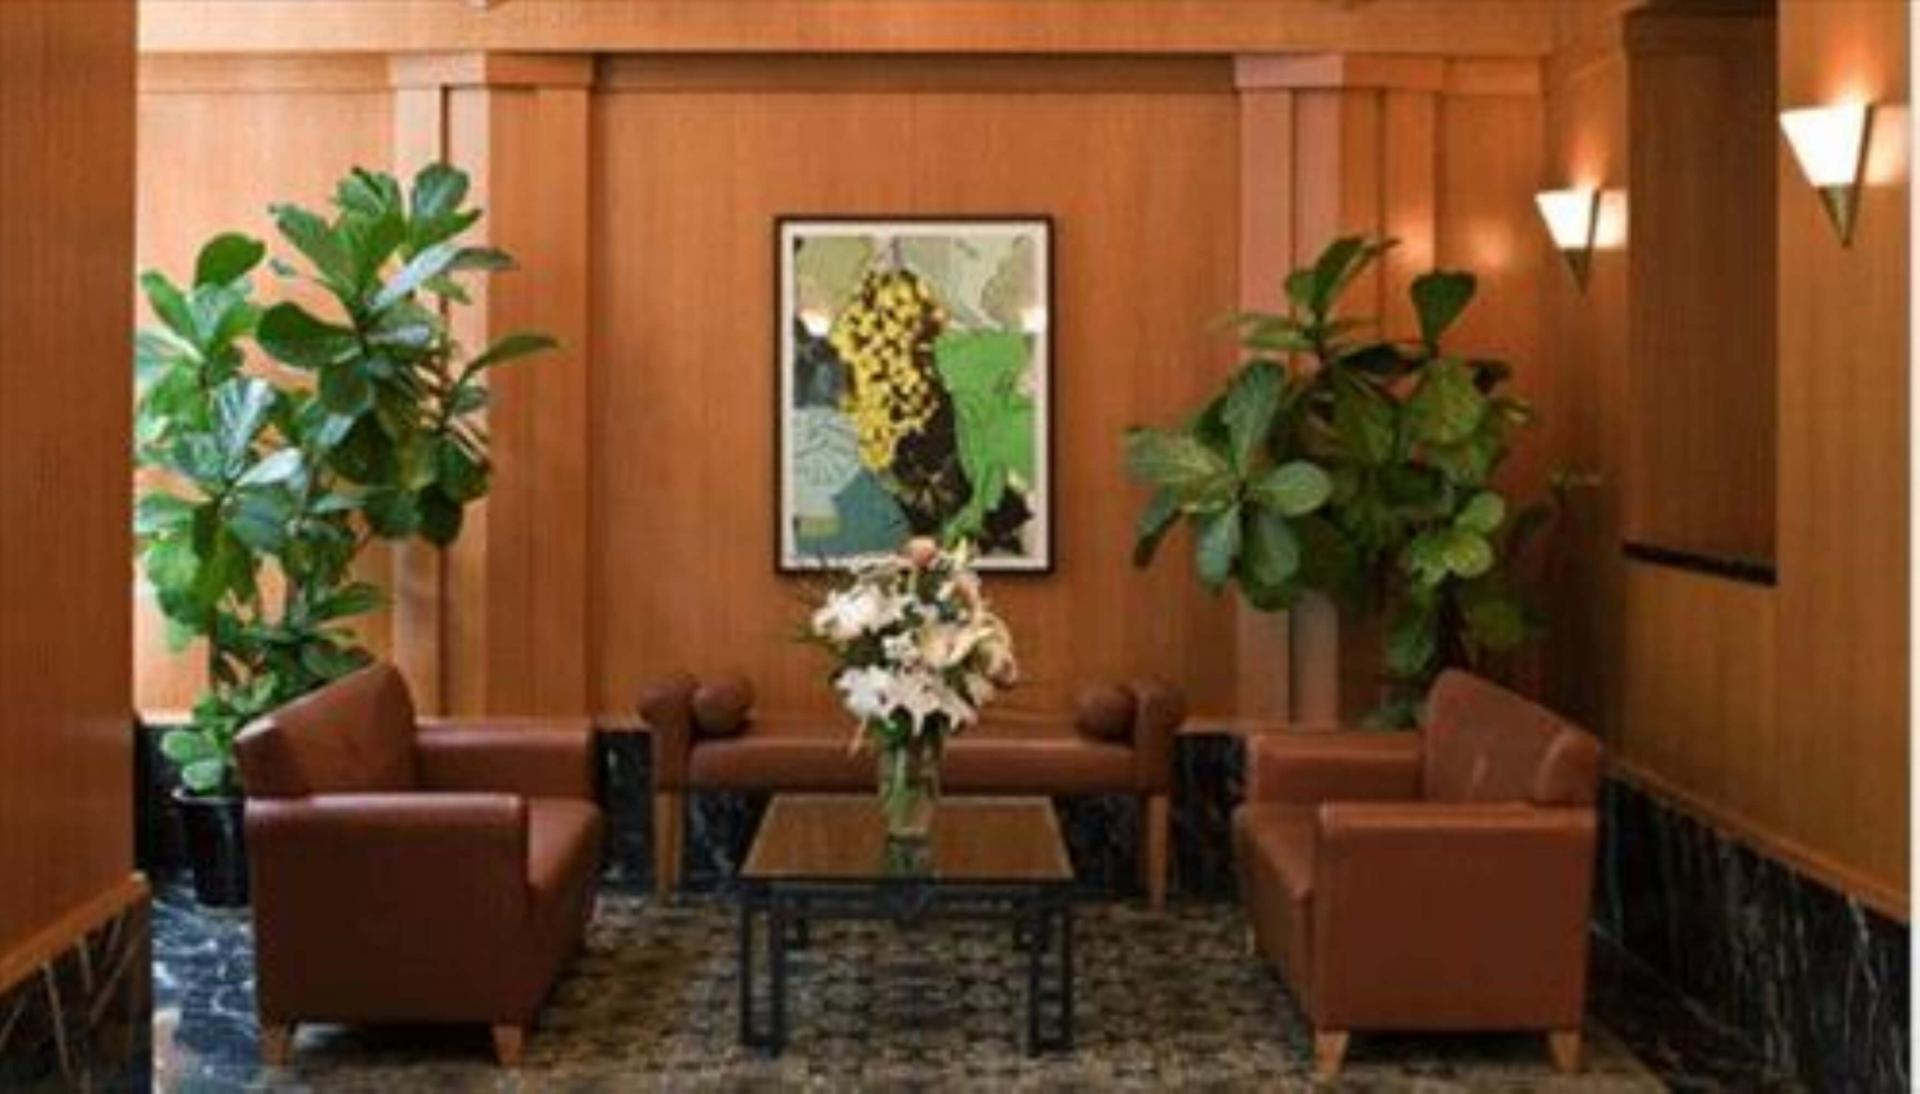 Lobby at The Pearl Apartments, Upper East Side, New York